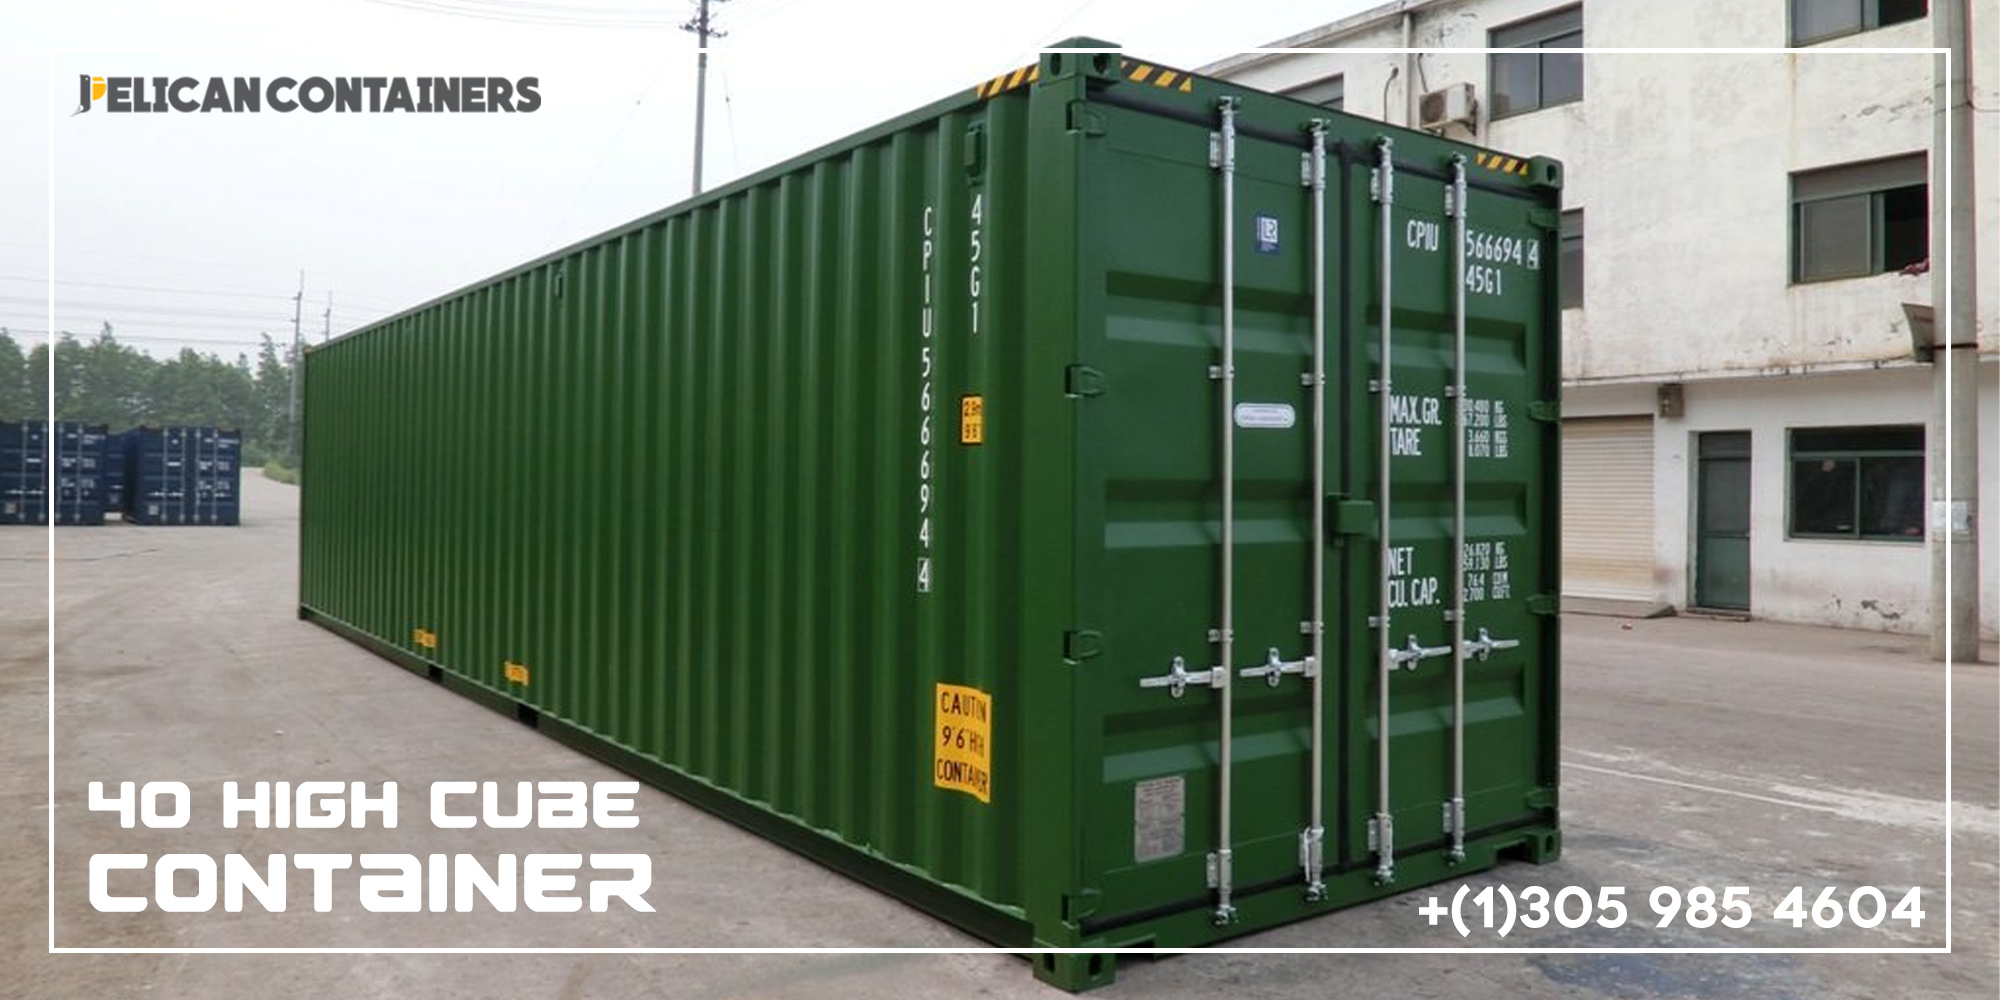 40ft HC Used Shipping Container for Sale in Denver - Pelican Containers